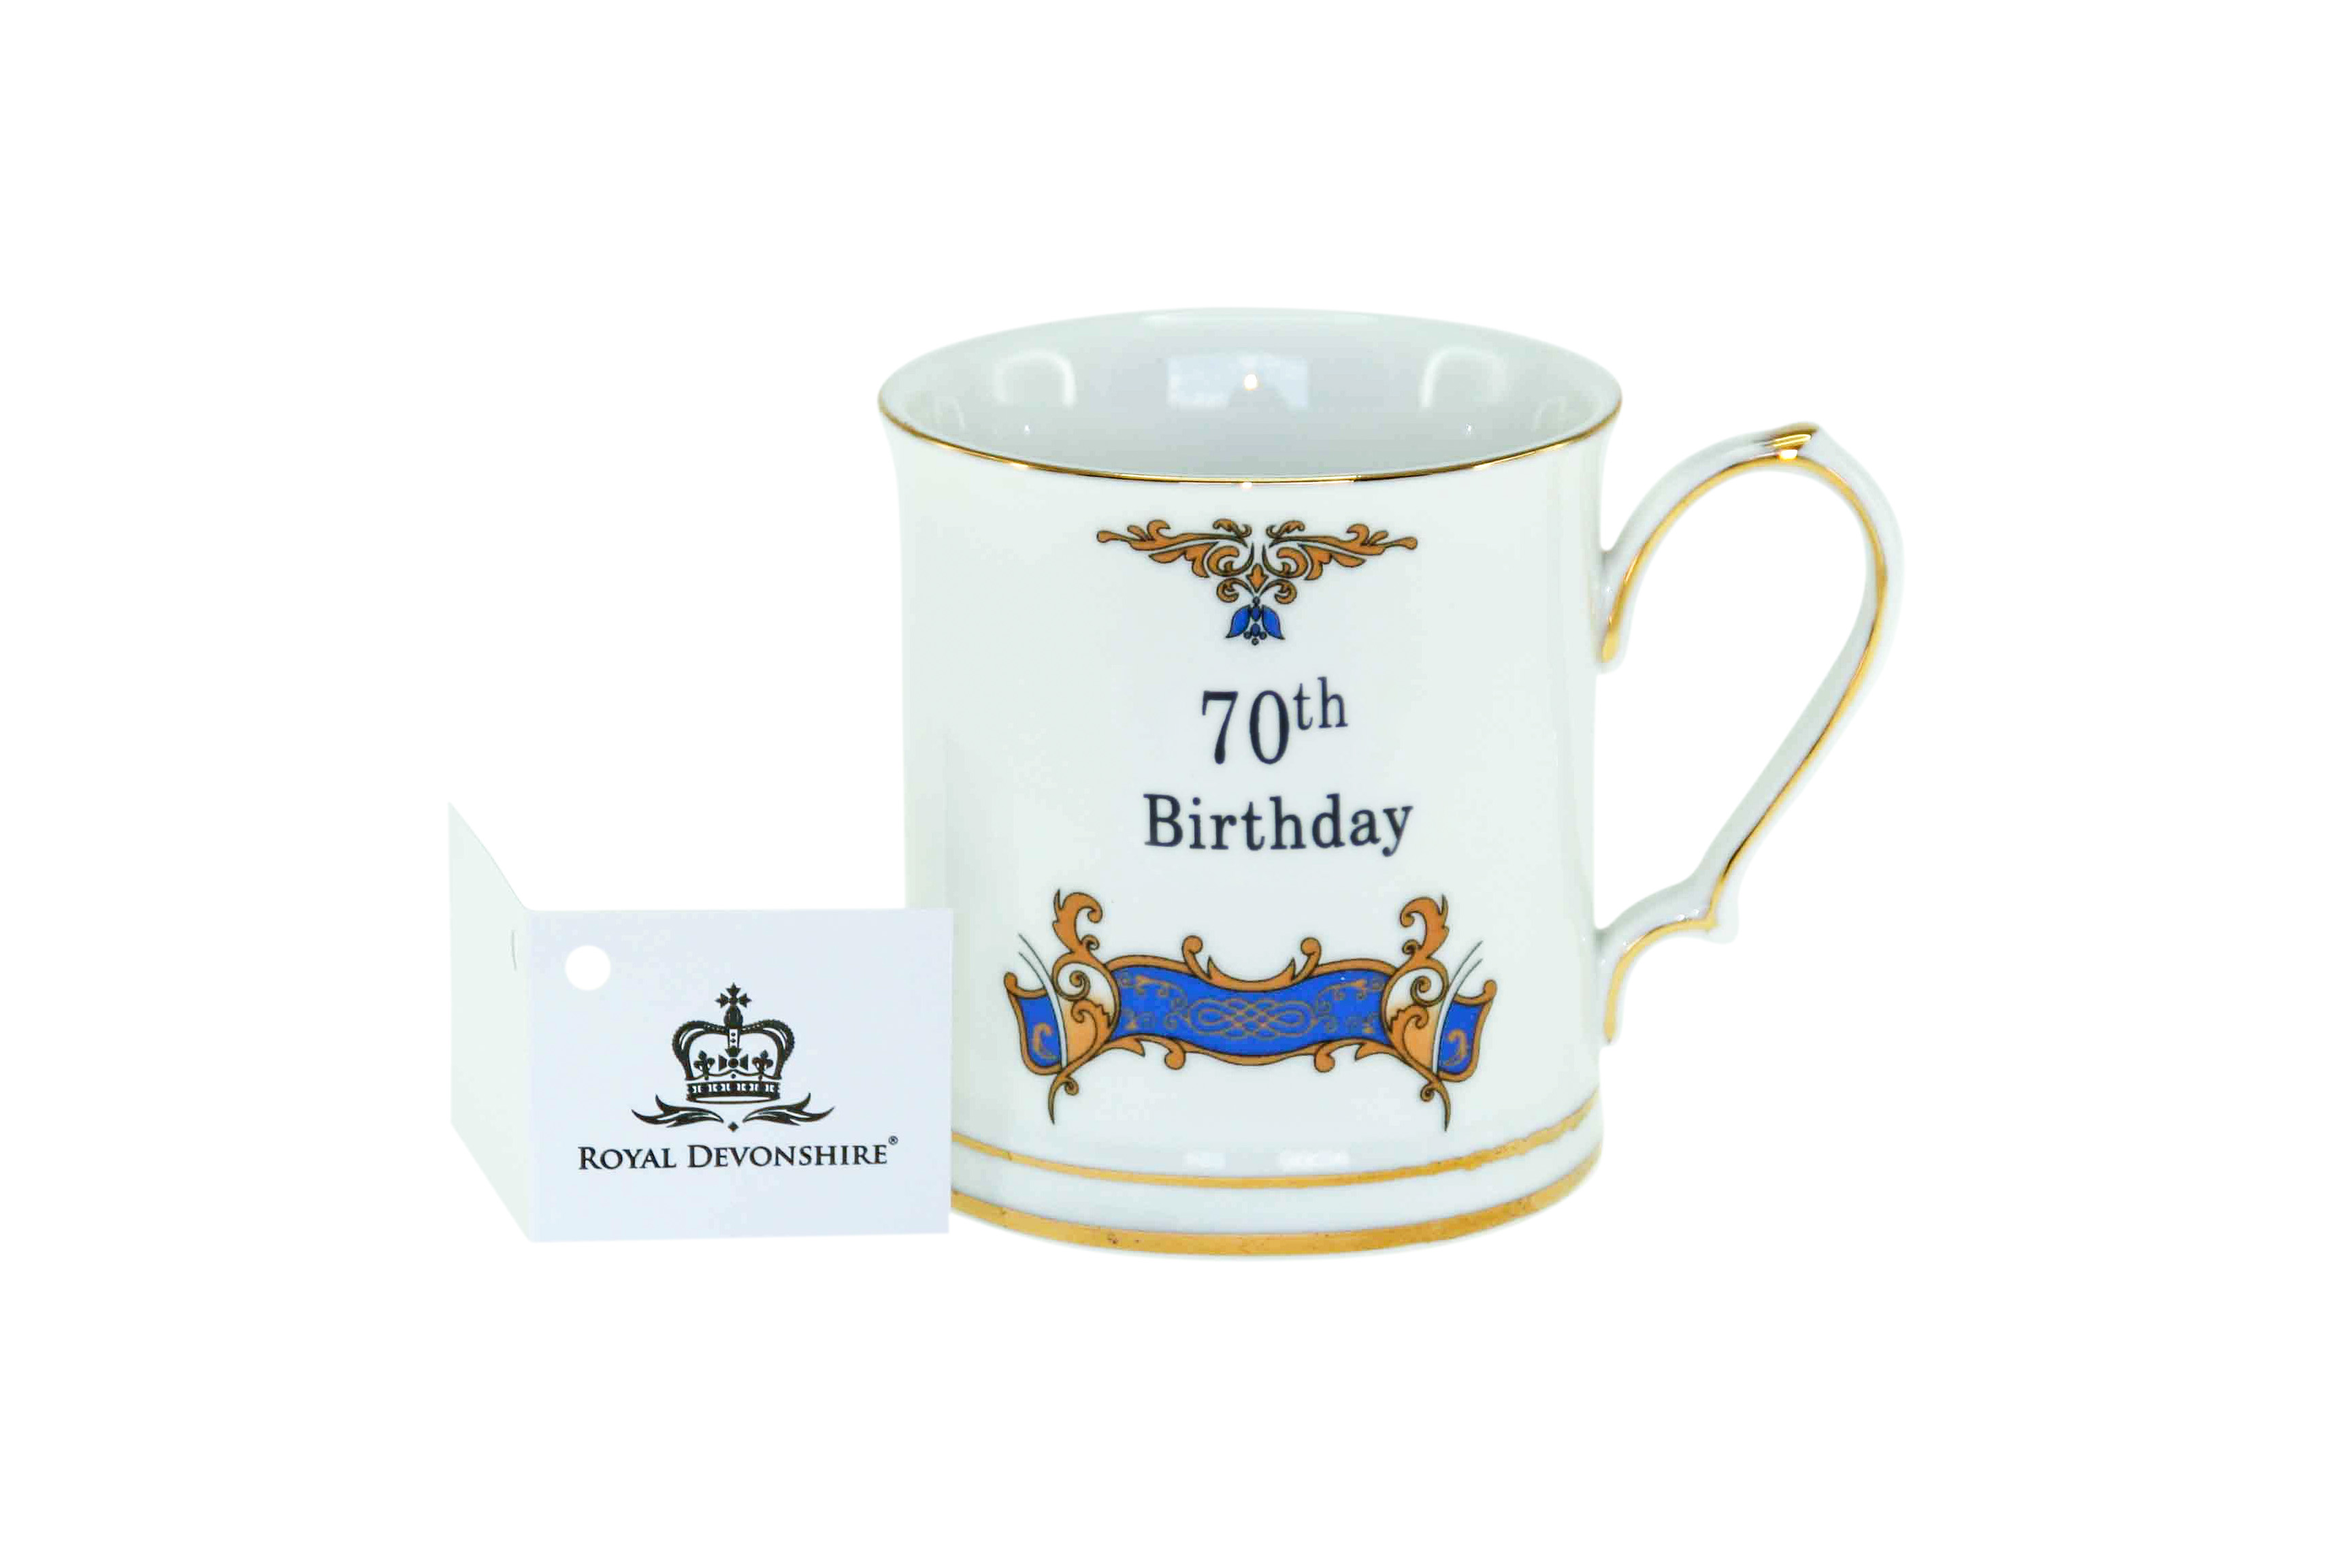 70th Birthday Tankard